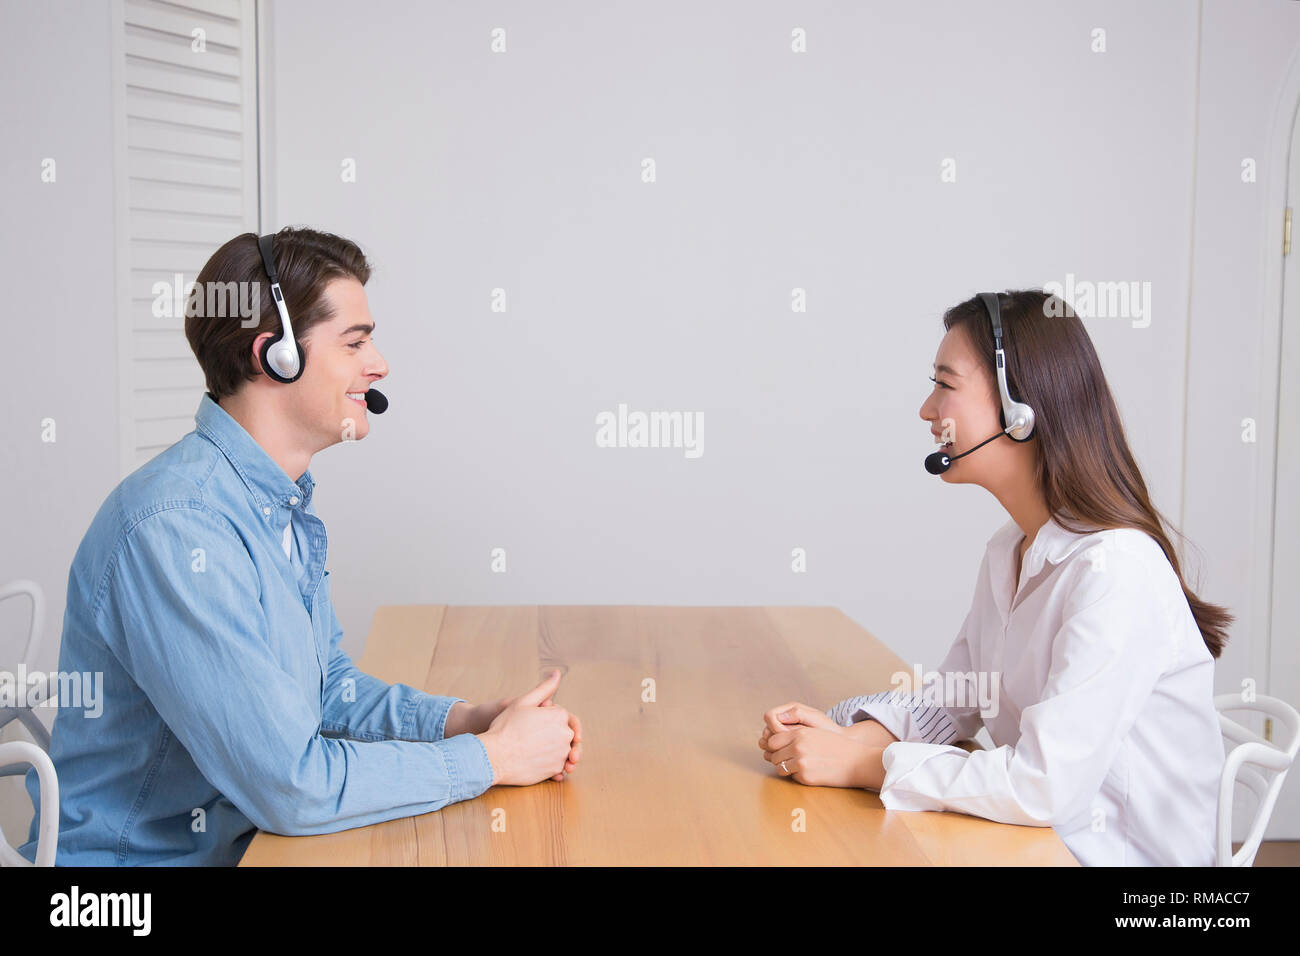 Conceptual photo study another foreign language on/off line verbal courses 035 - Stock Image